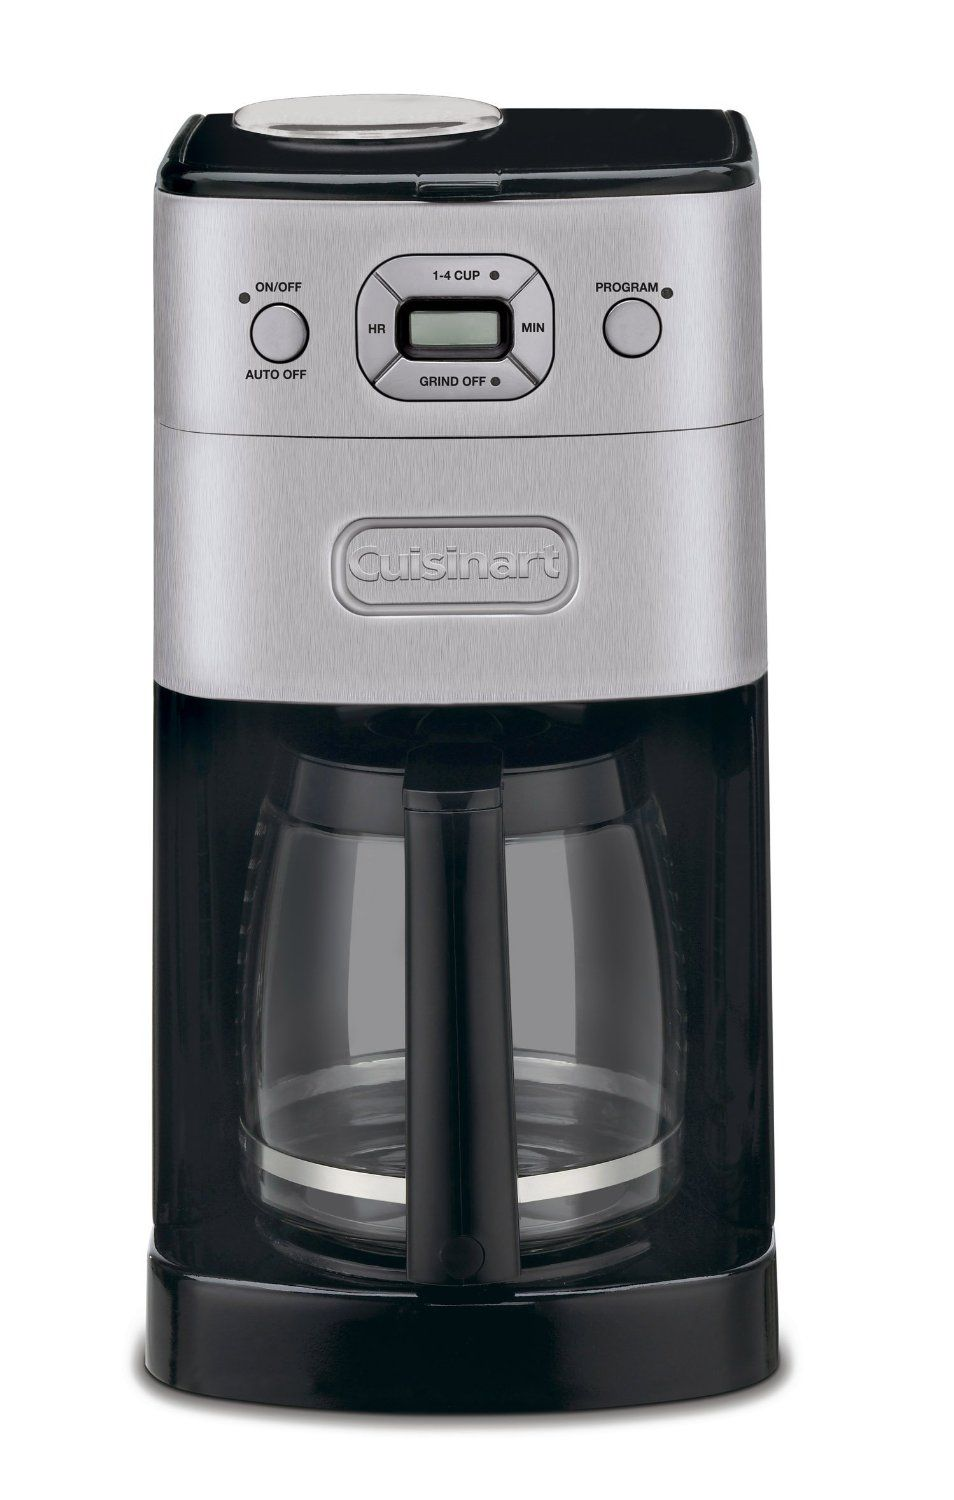 (TT/WS) GRIND & BREW 12-CUP AUTOMATIC COFFEEMAKER, 220-240V/50Hz/1000W, CUISINART == 3 YEARS WARRANTY, DOMESTIC USE ==